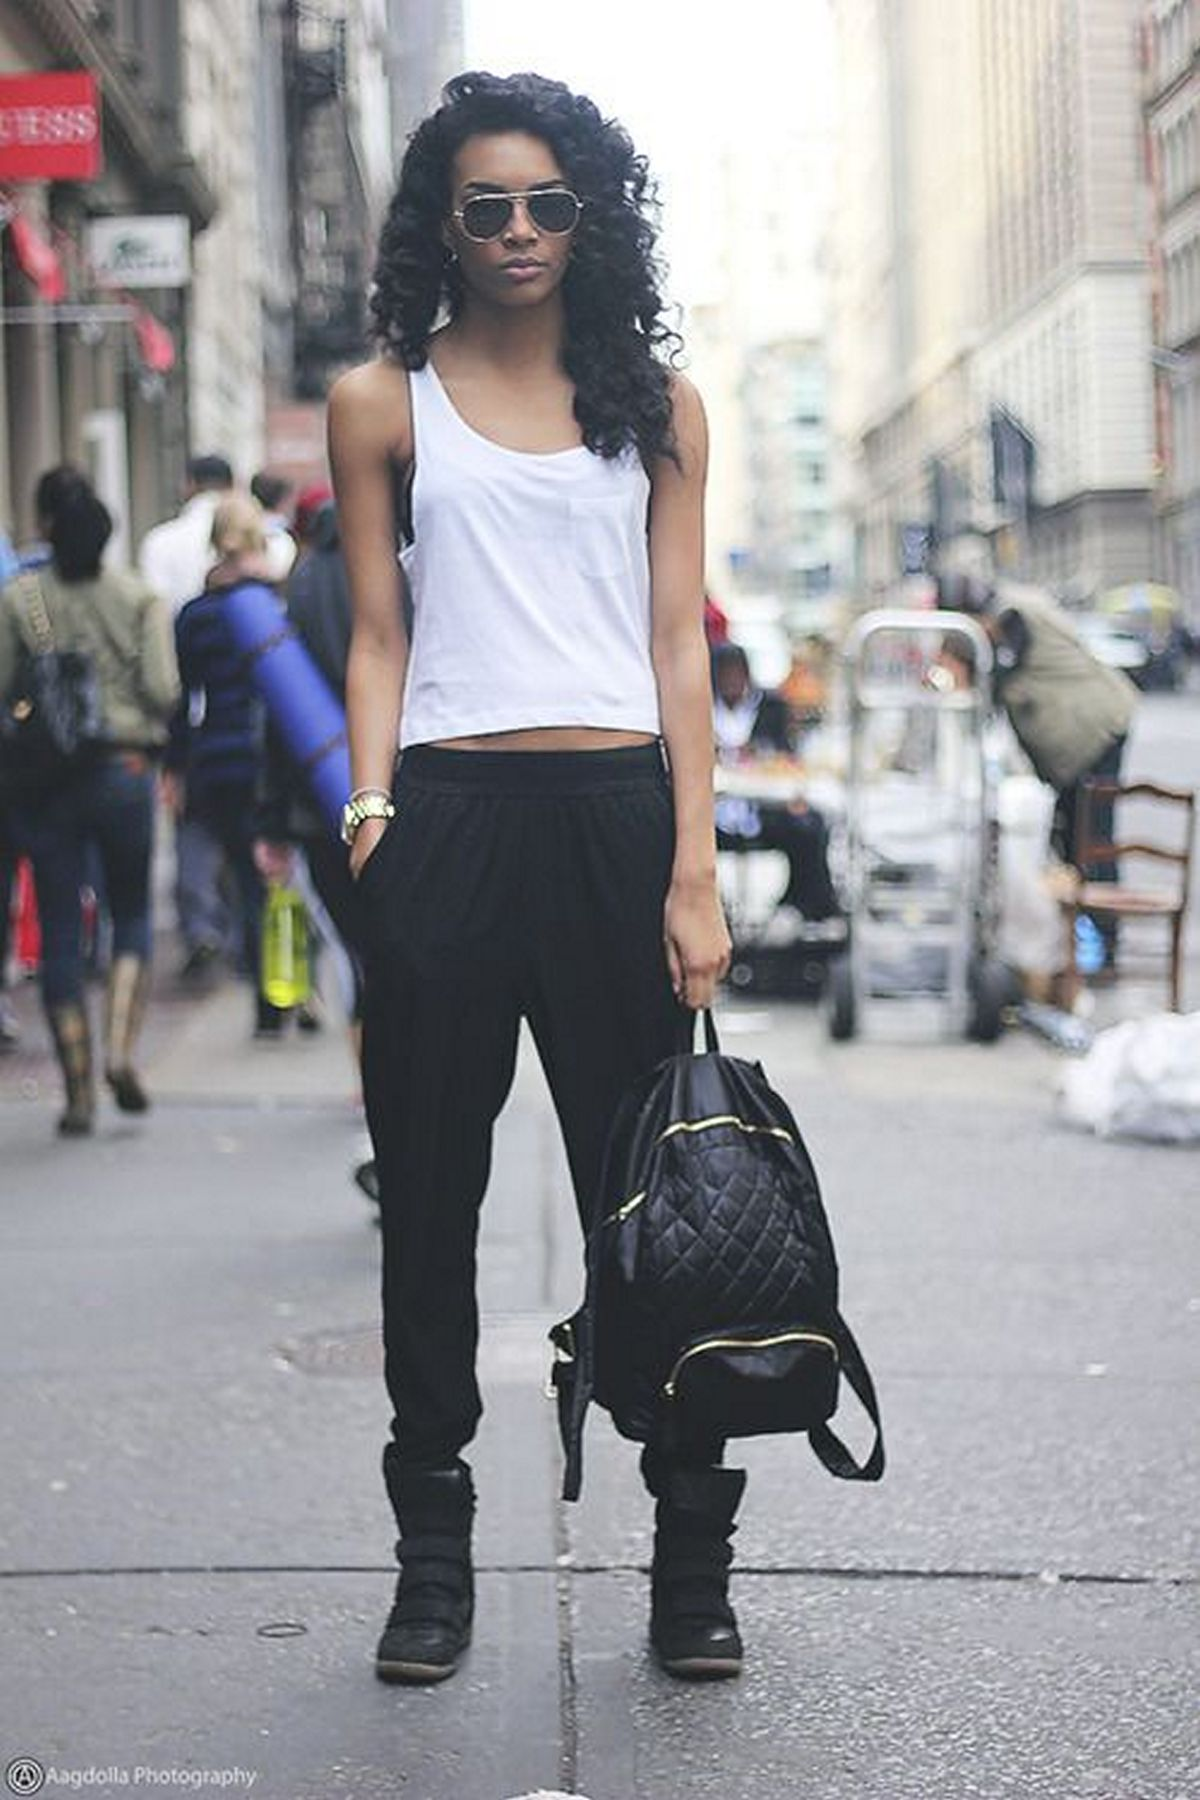 If femenine is not your style, these outfits are what you were looking for (73)